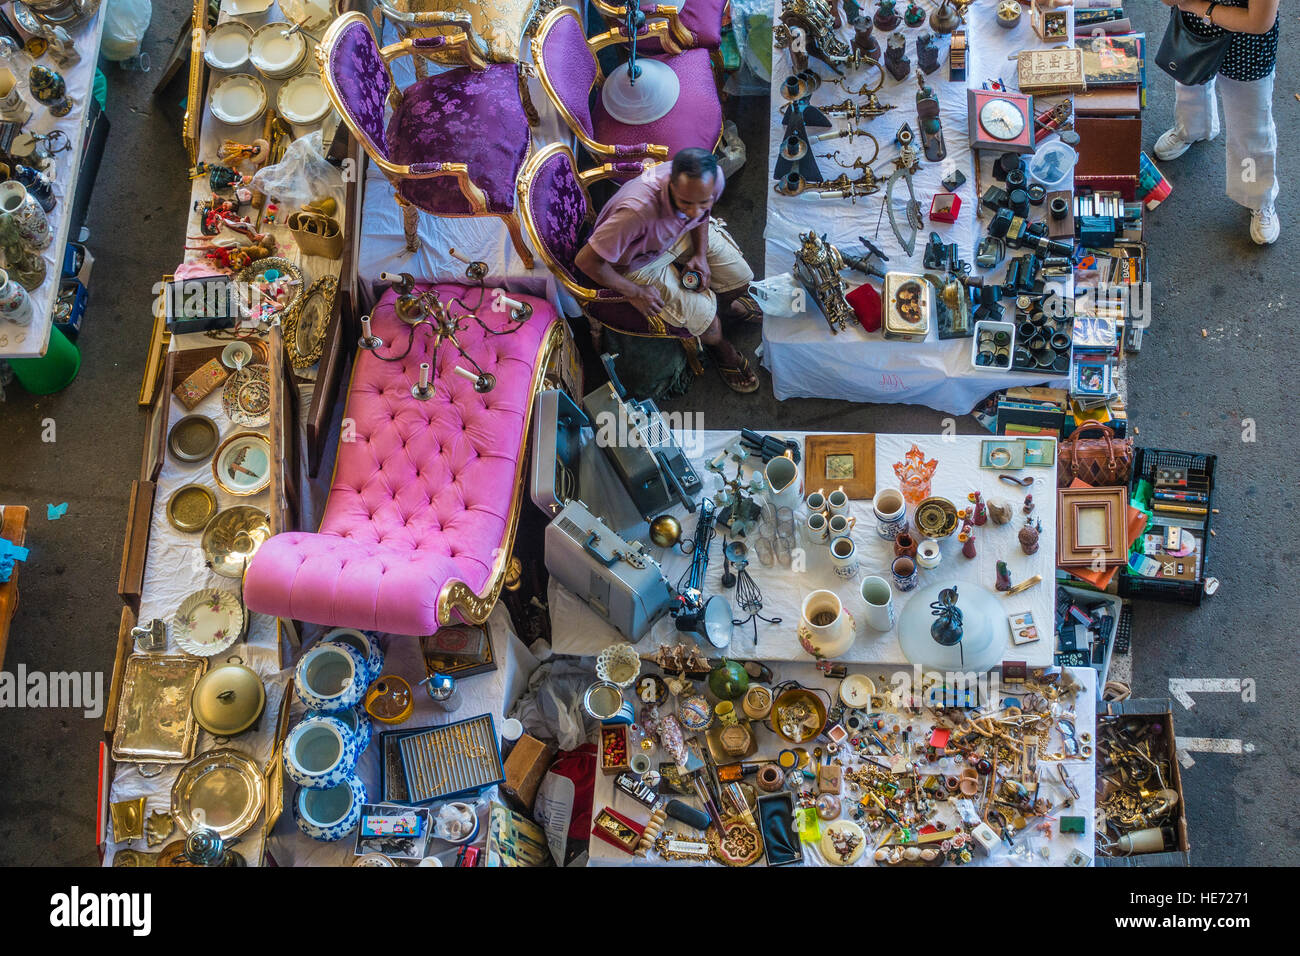 A view from above of an indoor flea market in Barcelona, Spain with an eclectic assortment of items for sale and Stock Photo